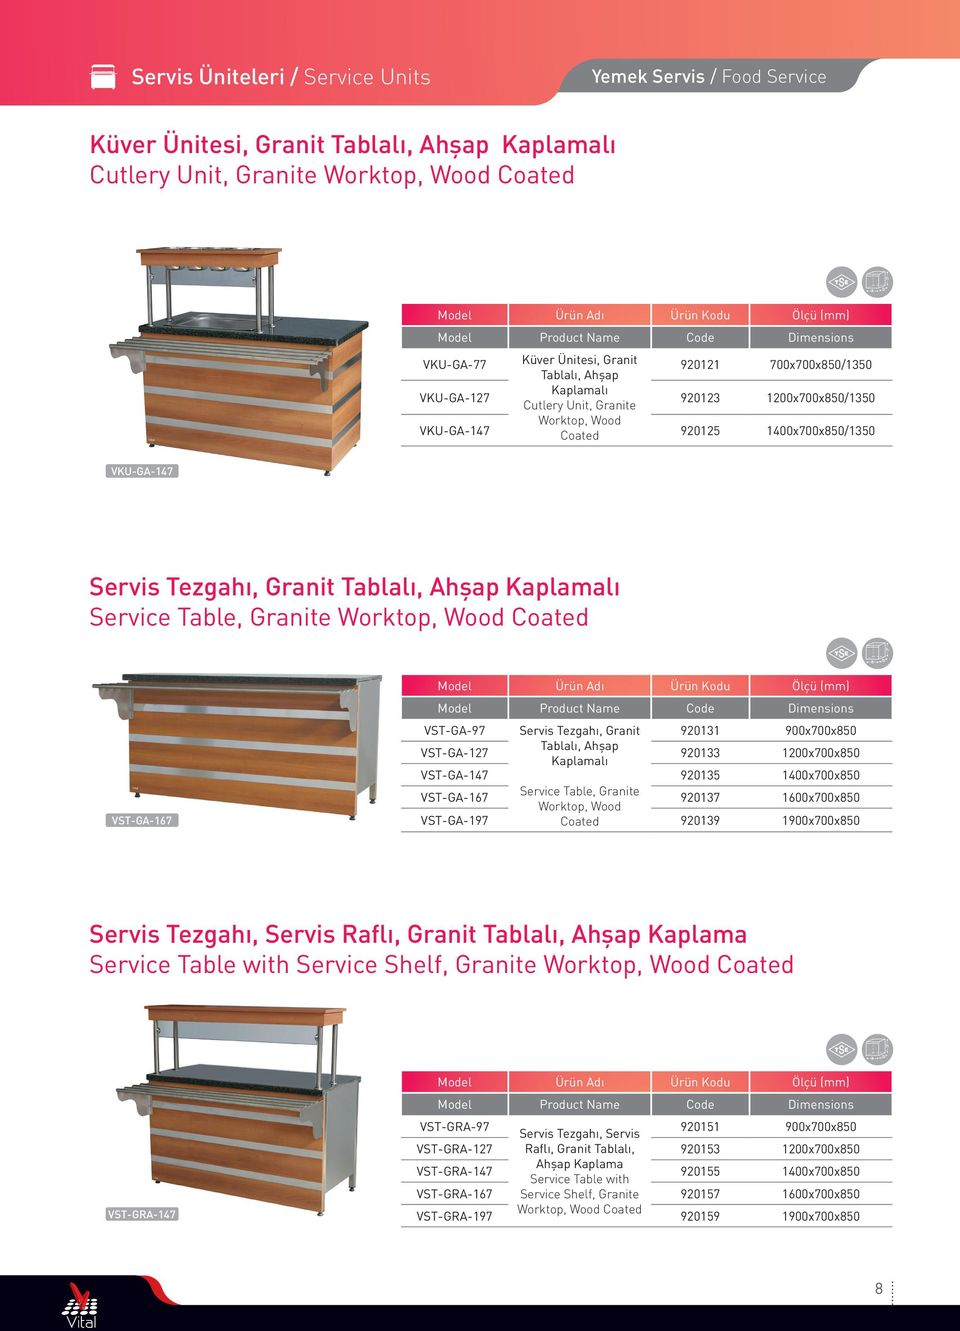 (mm) VKU-GA-127 VKU-GA-147 VKU-GA-147 Servis Tezgahı, Granit Tablalı, Ahşap Kaplamalı Service Table, Granite Worktop, Wood Coated Product Name Code Dimensions VST-GA-97 Servis Tezgahı, Granit